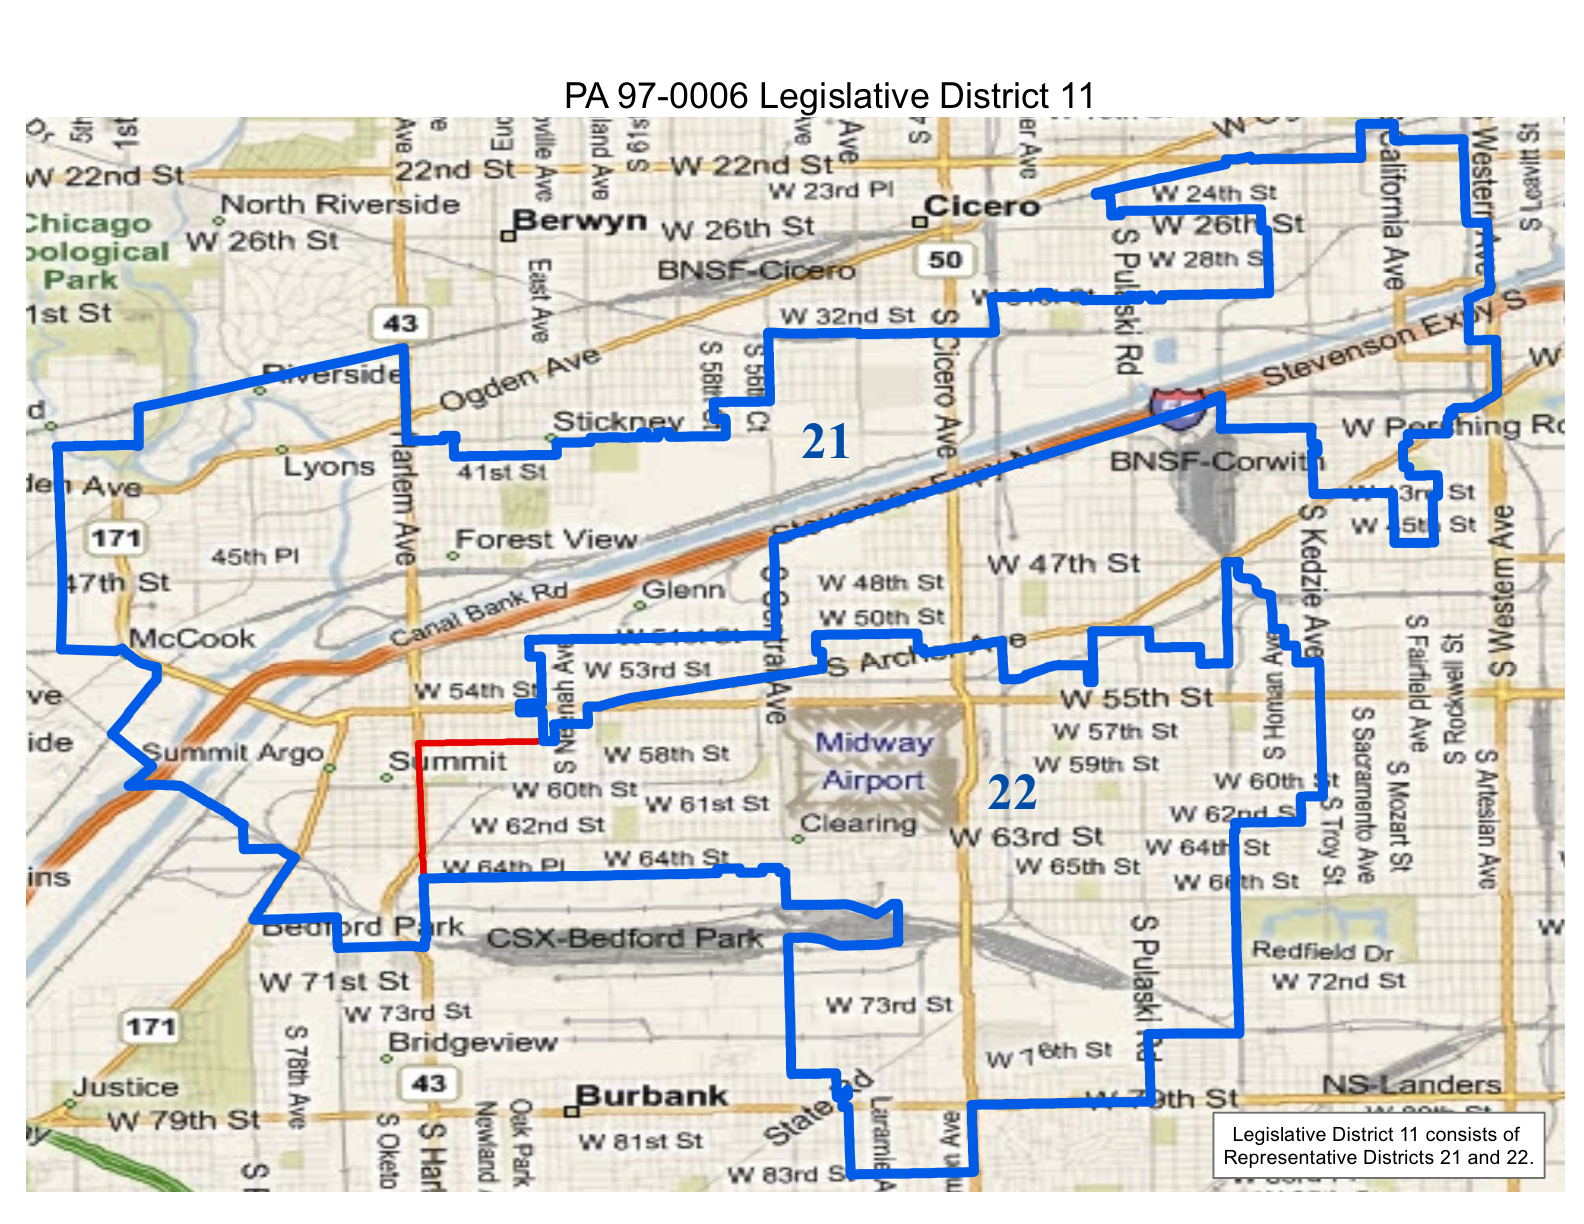 map of 2012 illinois legislative district 11 which includes state senate district 11 and state representative districts 21 and 22